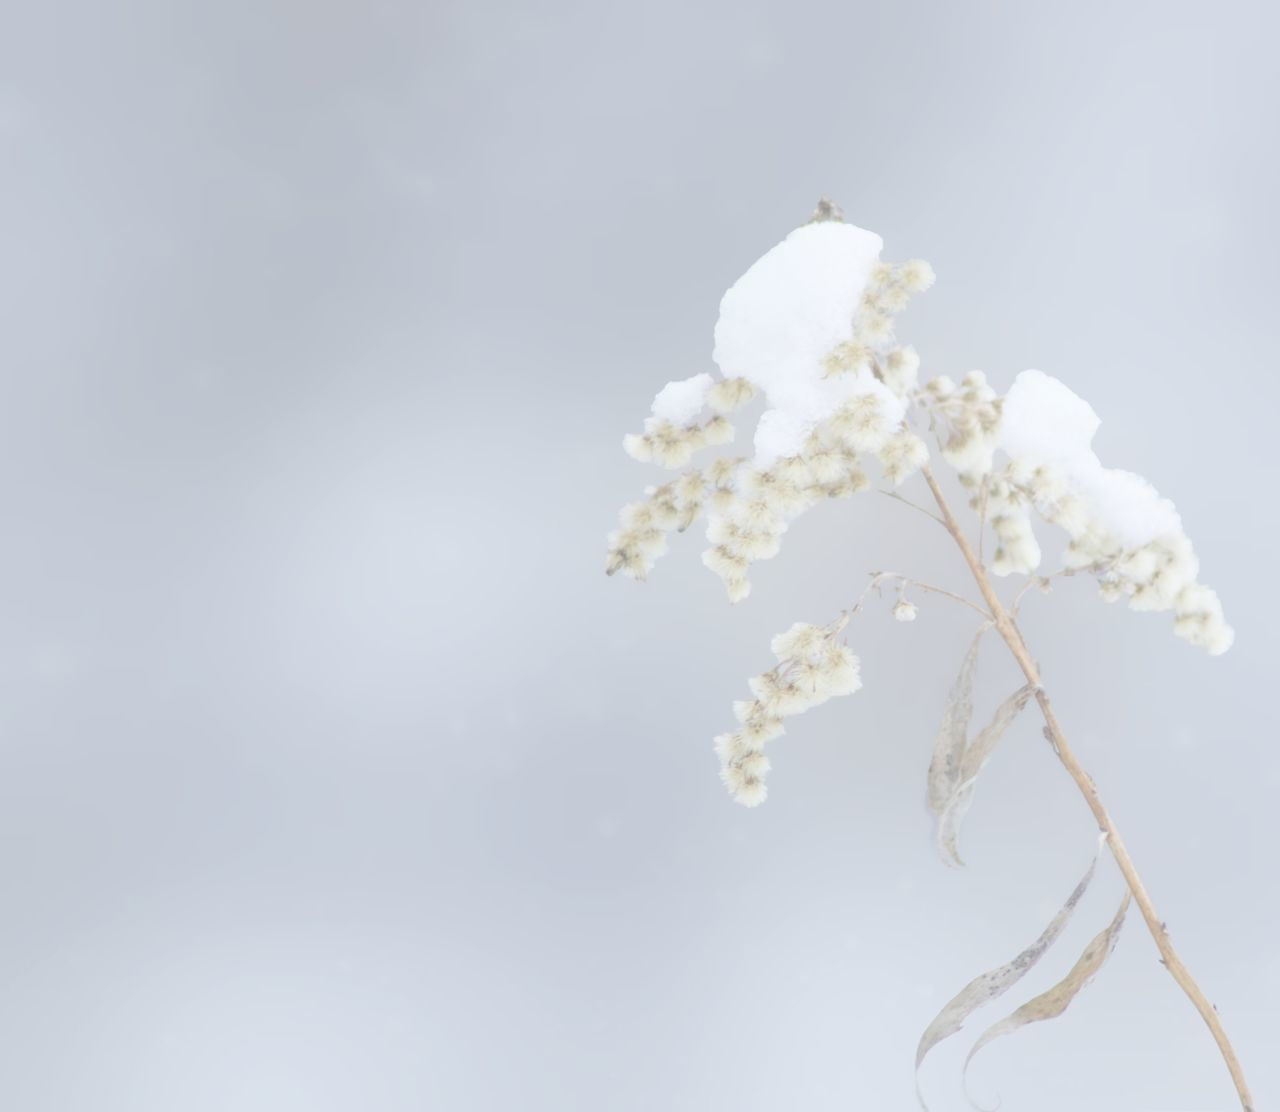 Barren Beauty In Nature Botany Composition Growing Lens Flare Nature Negative Space No People Non-urban Scene Outdoors Scenics Single Object Snow Covered Snow On A Wildflower Softness Sunny Tranquil Scene Tranquility White White Color Winter Calm Winter Sleep Winter Wonderland Winter Woodland